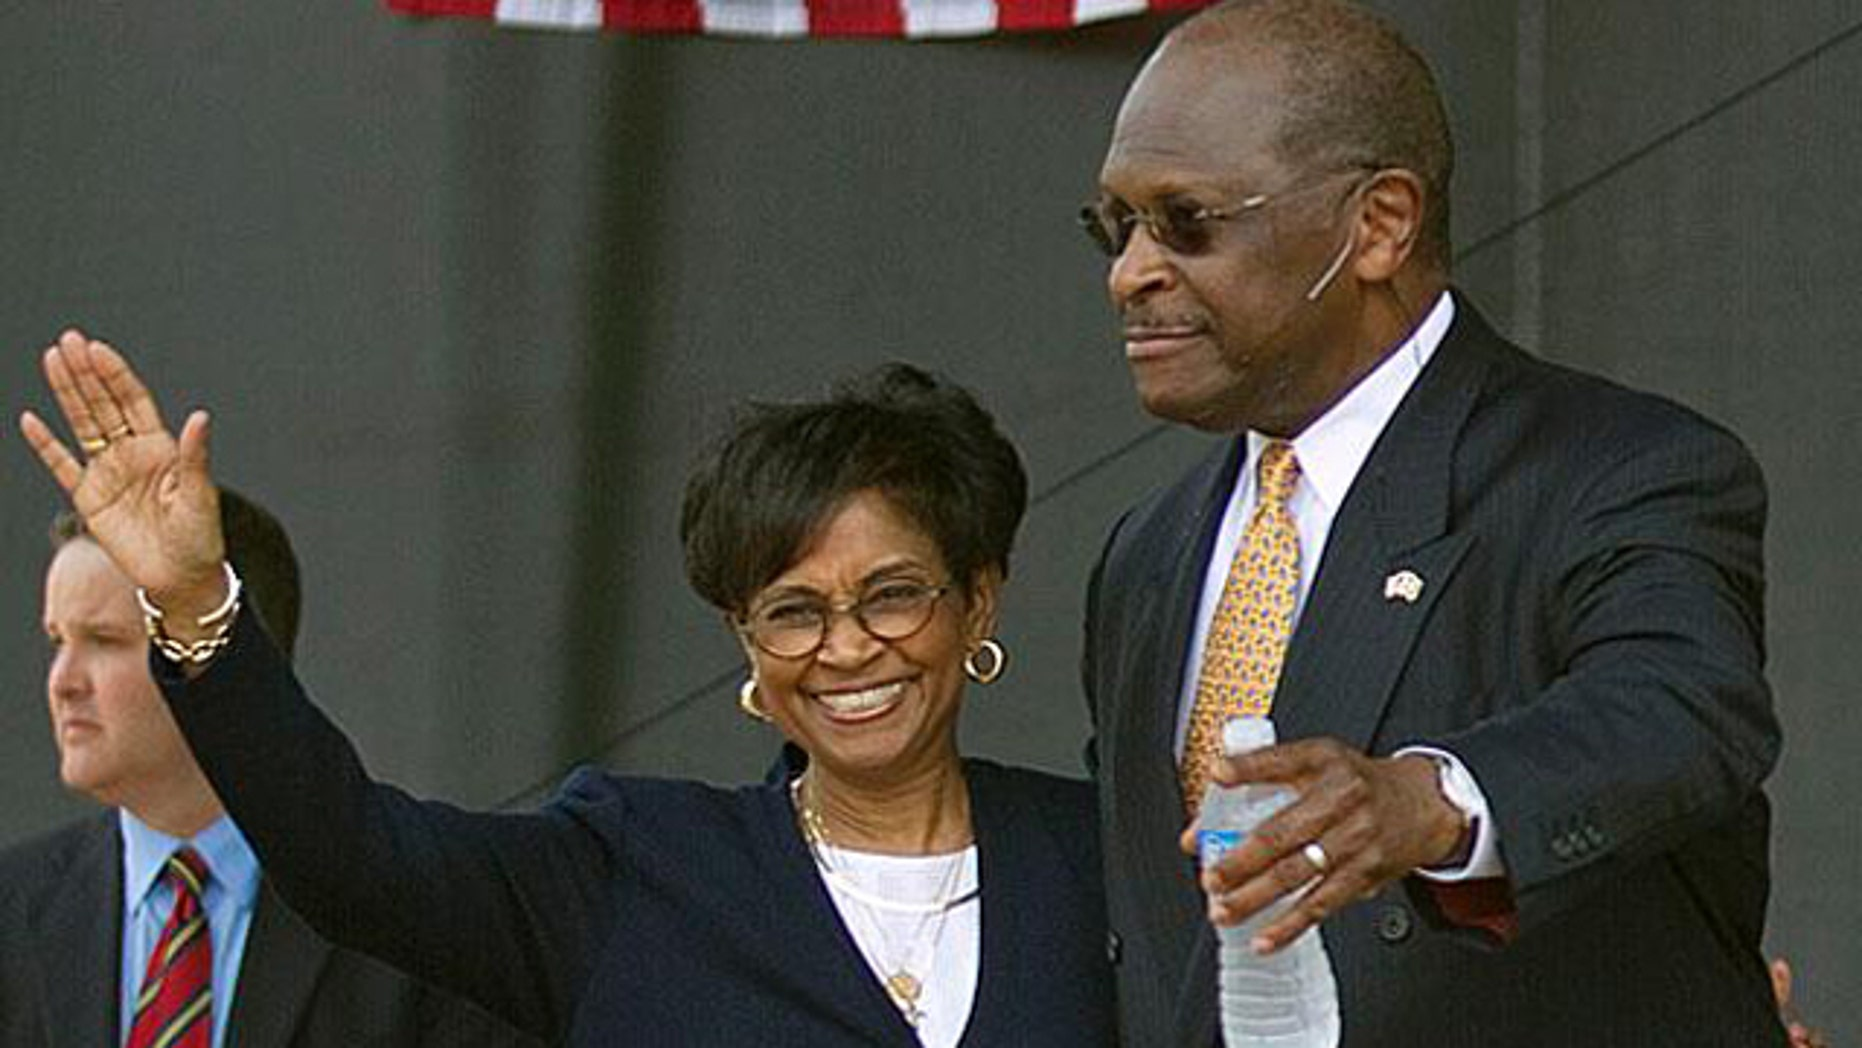 May 21, 2011: Herman Cain and his wife, Gloria, wave during his presidential campaign kickoff in Atlanta.